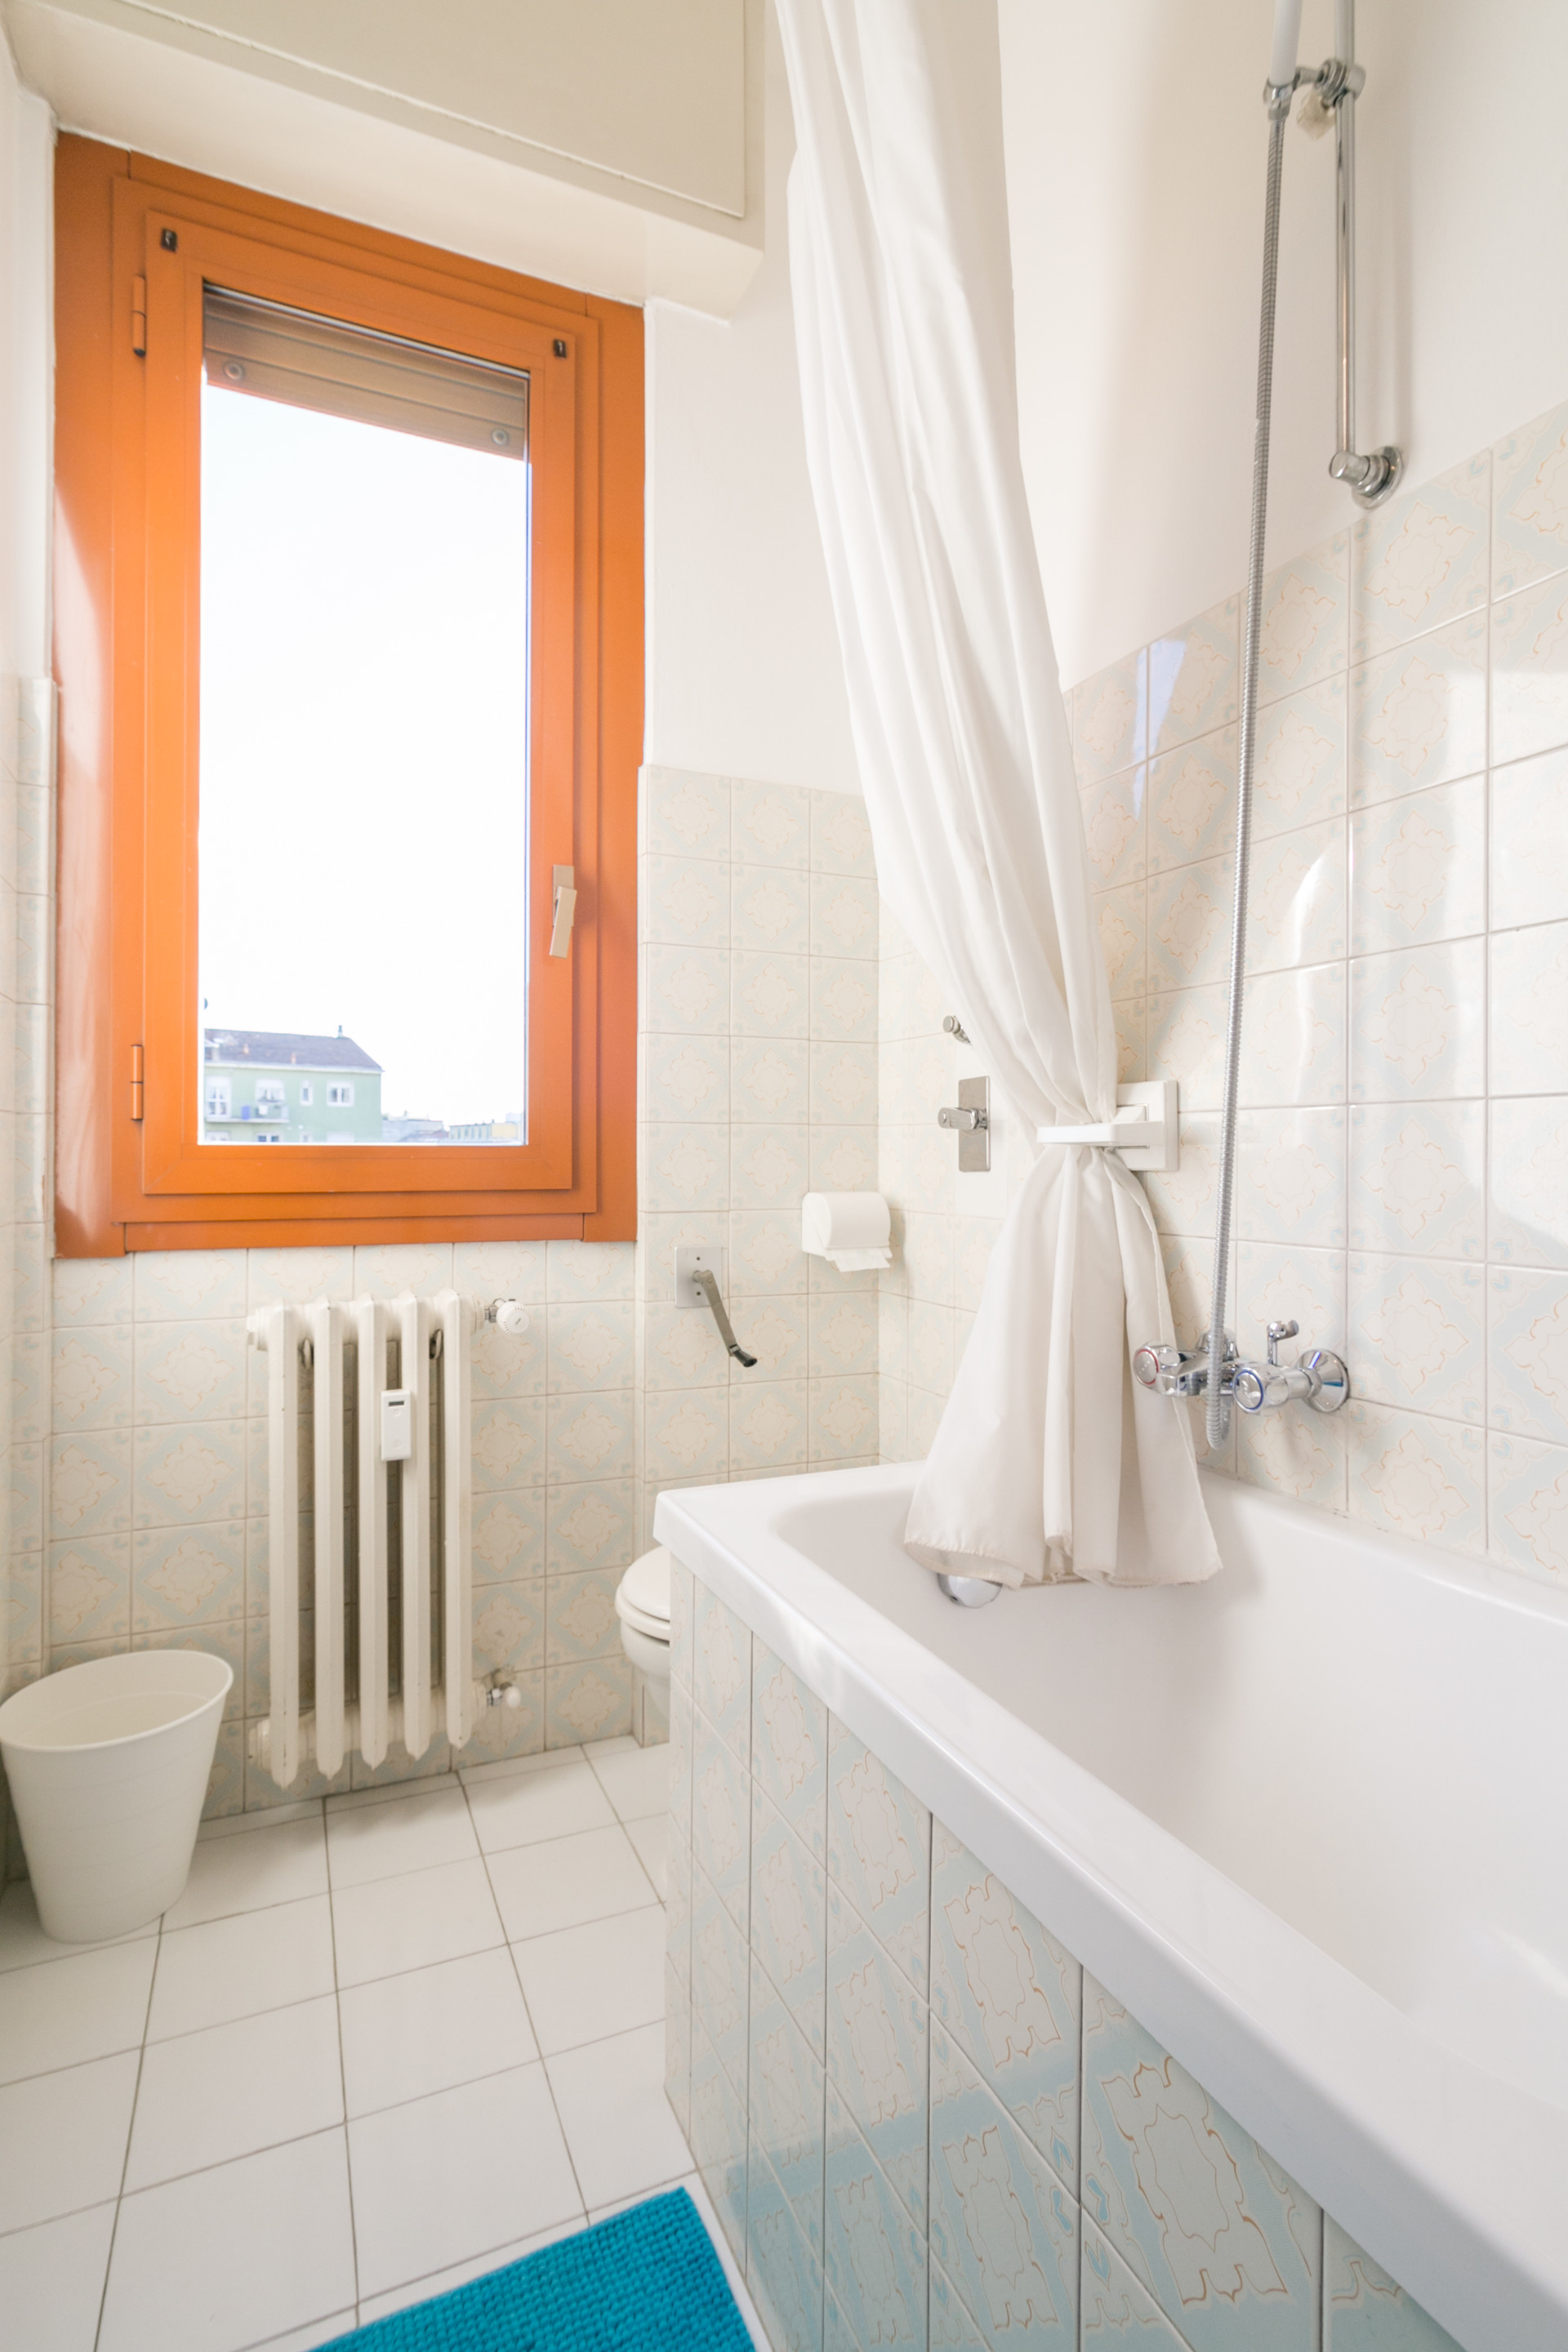 large-double-bedroom-great-window-view-milano-center-359f2d8069776df122e5d1a3eabf6d84